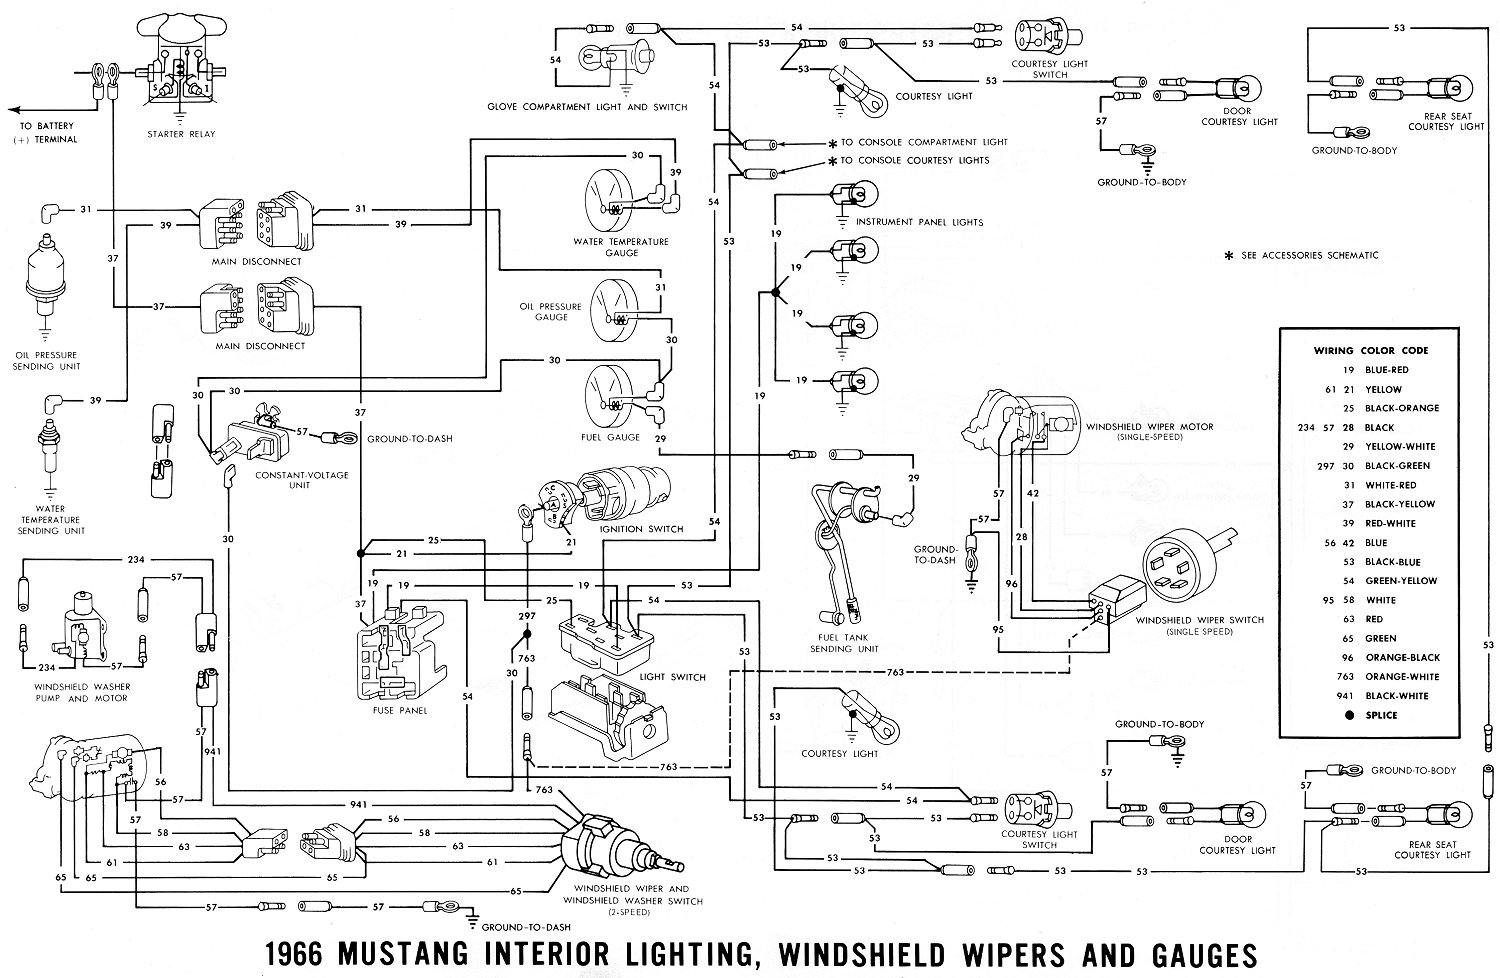 66inter1 1966 mustang wiring diagrams average joe restoration 66 mustang wiring diagram at nearapp.co